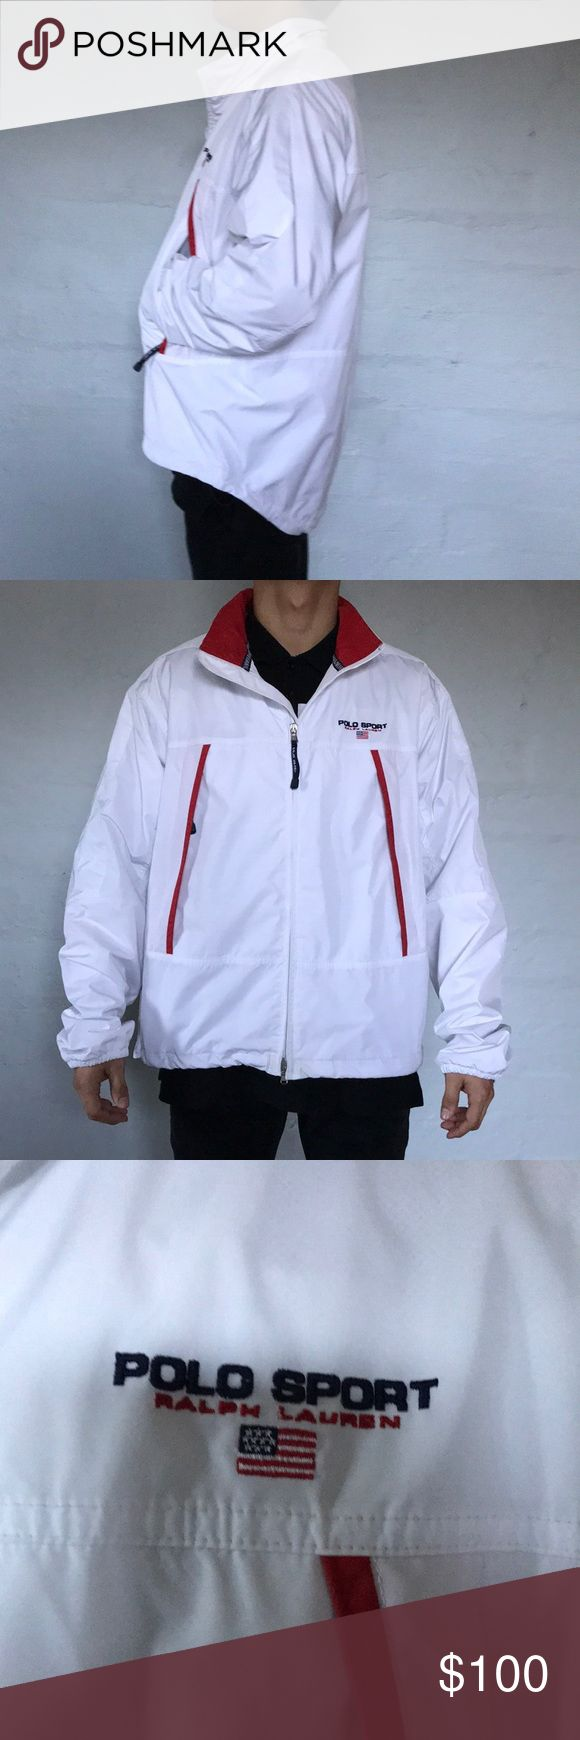 Vintage Polo Sport Jacket What a find! Vintage Polo Sport Jacket with spell out on breast. Two large zipper pockets on front with Polo Sport on tab. Clean white with hits of red and blue Polo by Ralph Lauren Jackets & Coats Windbreakers